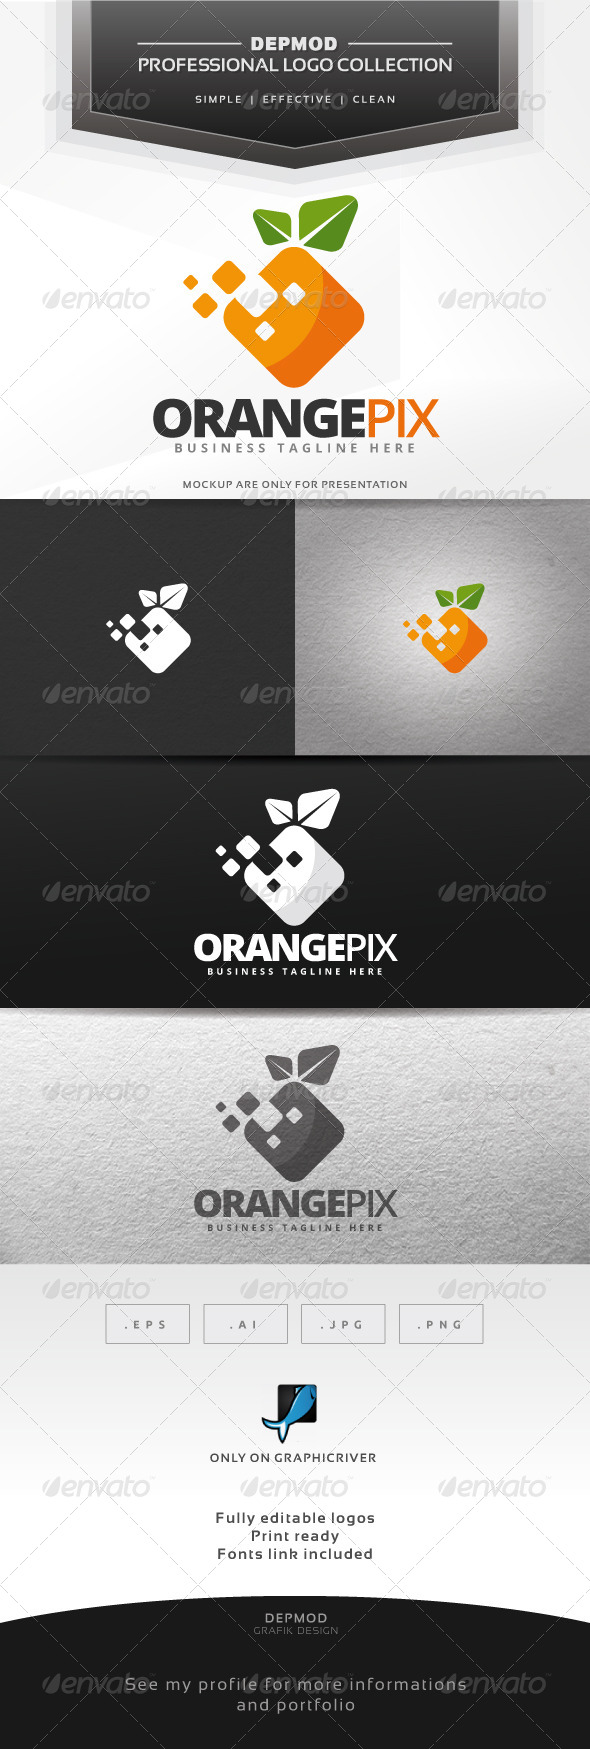 GraphicRiver Orange Pix Logo 6837788